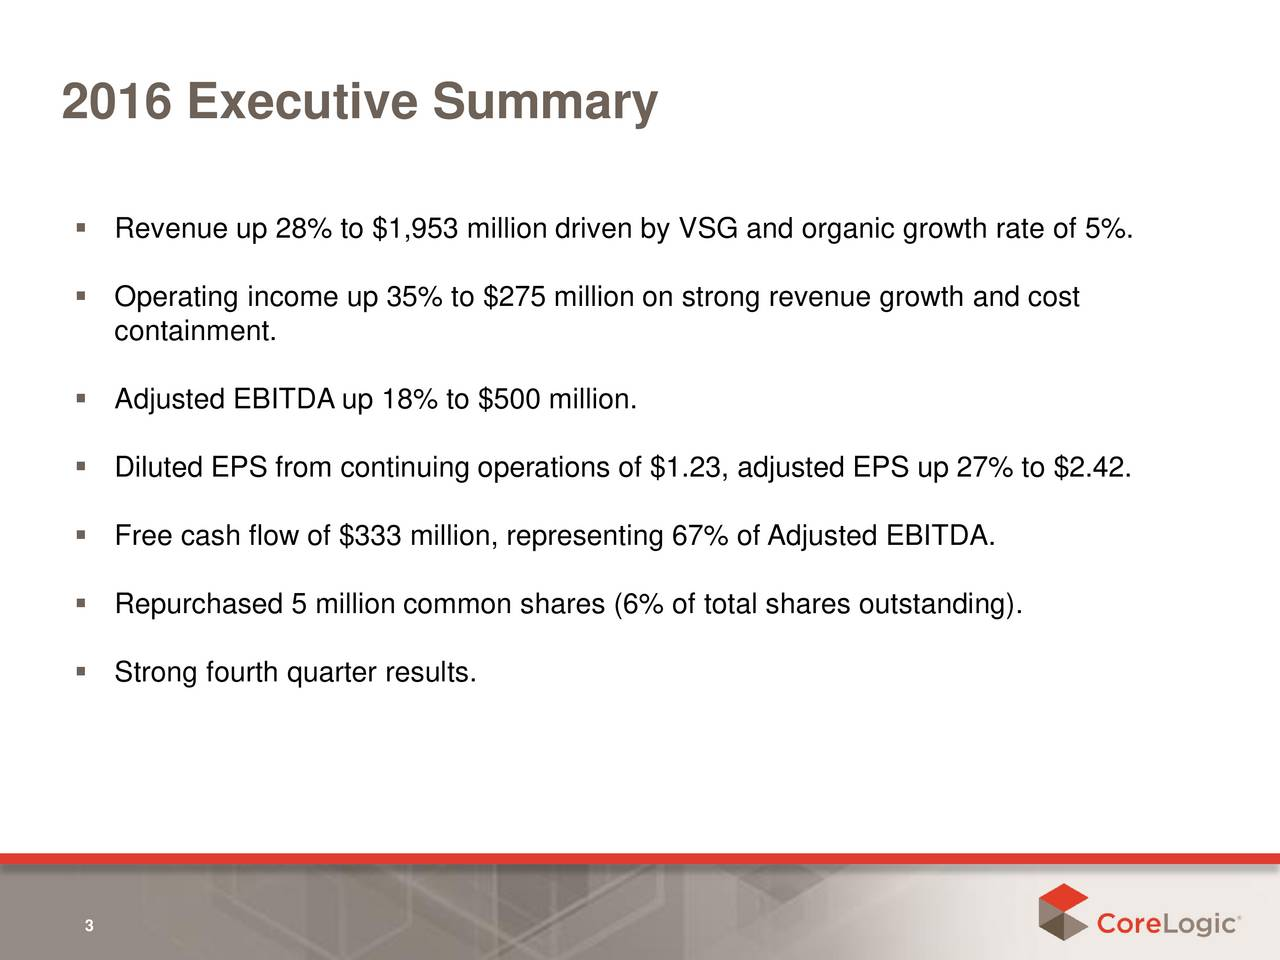 Revenue up 28% to $1,953 million driven by VSG and organic growth rate of 5%. Operating income up 35% to $275 million on strong revenue growth and cost containment. Adjusted EBITDA up 18% to $500 million. Diluted EPS from continuing operations of $1.23, adjusted EPS up 27% to $2.42. Free cash flow of $333 million, representing 67% of Adjusted EBITDA. Repurchased 5 million common shares (6% of total shares outstanding). Strong fourth quarter results. 3